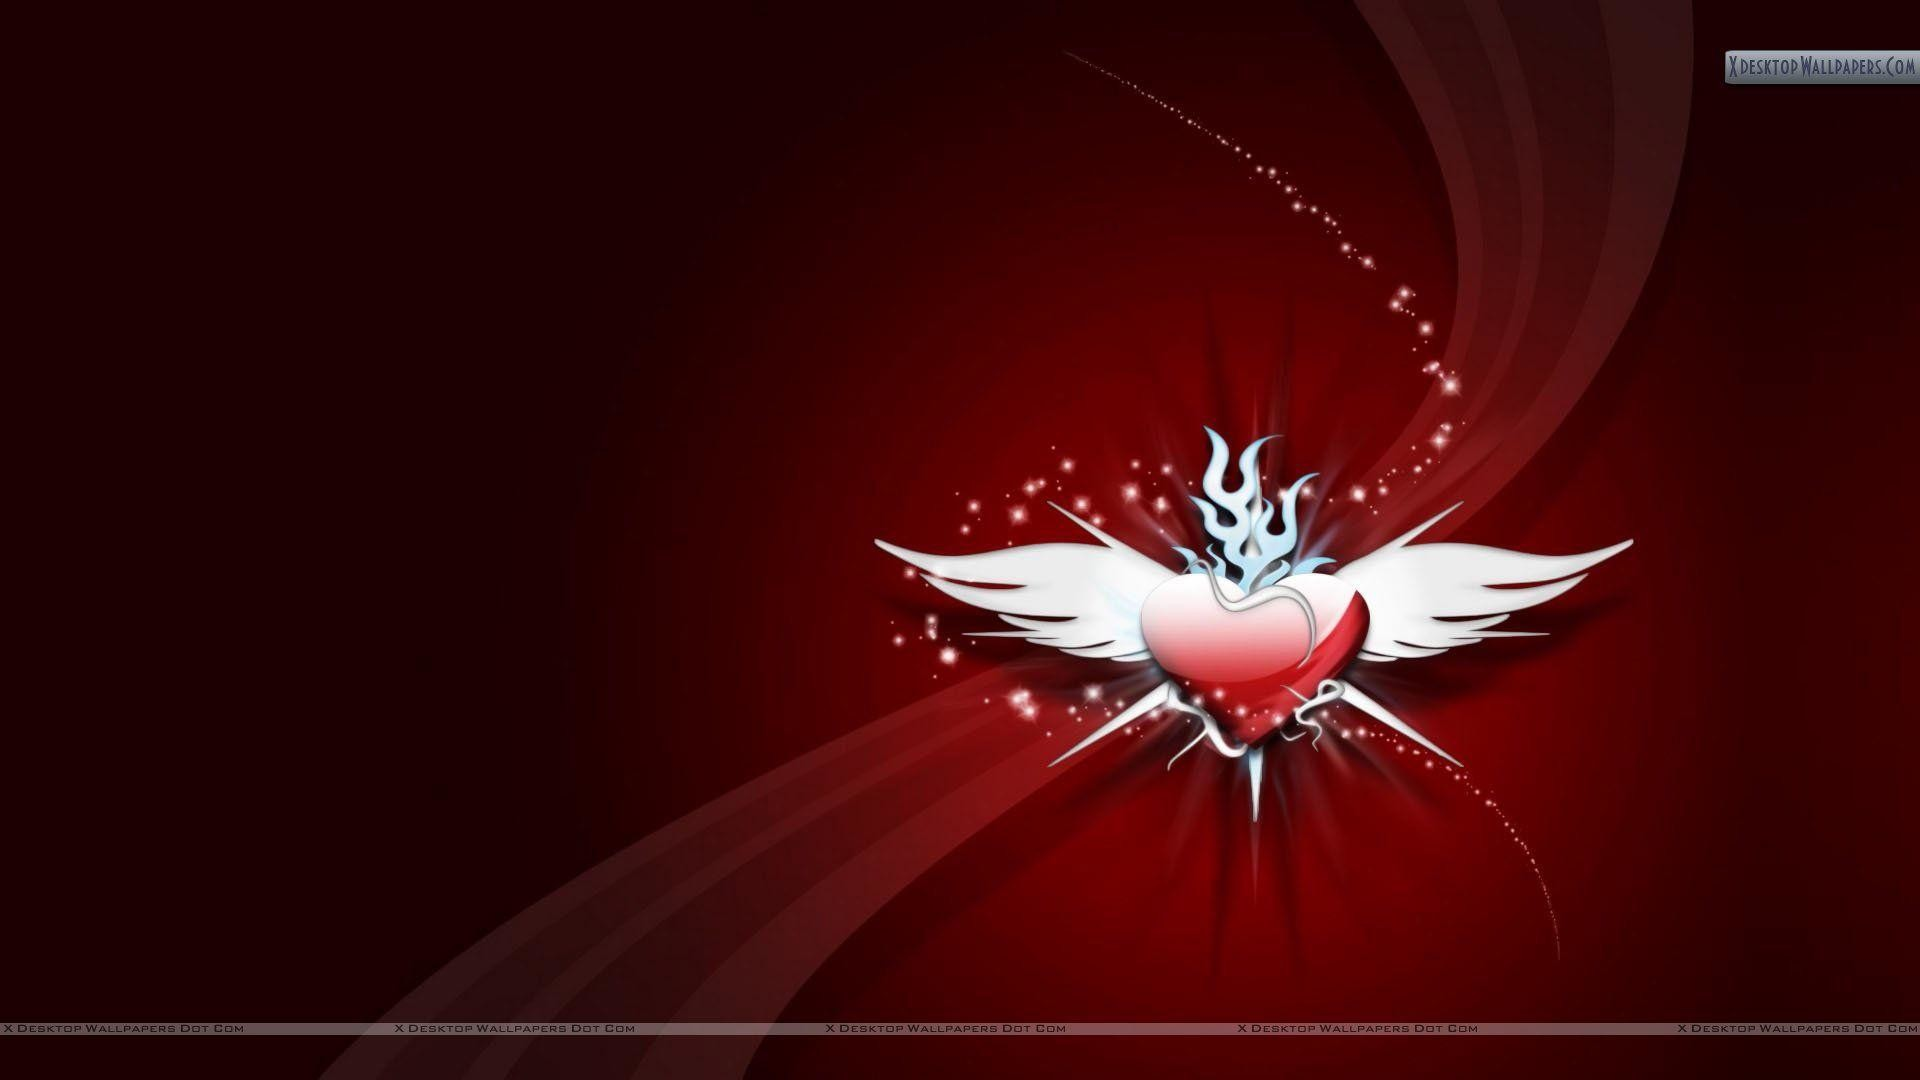 Cool Red Backgrounds wallpaper – 543058